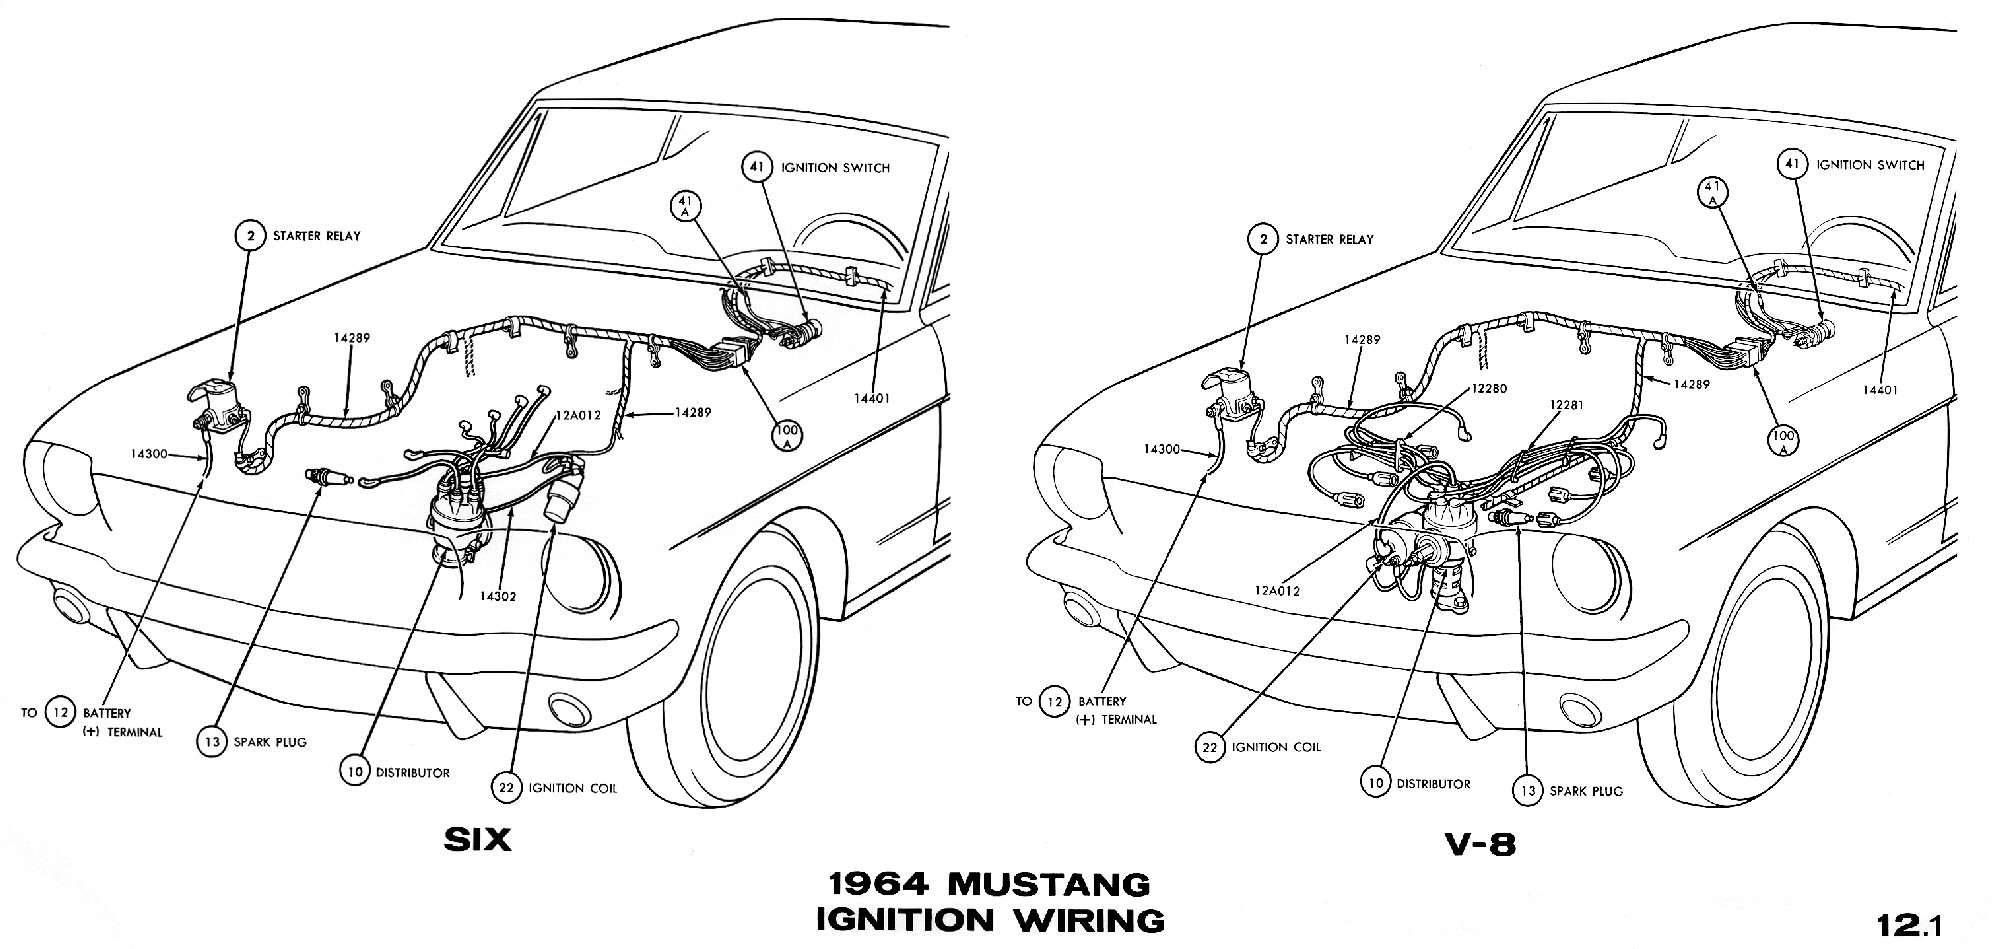 1964 Mustang Ignition Wiring Pictorial. V-6/V-8 starter ...